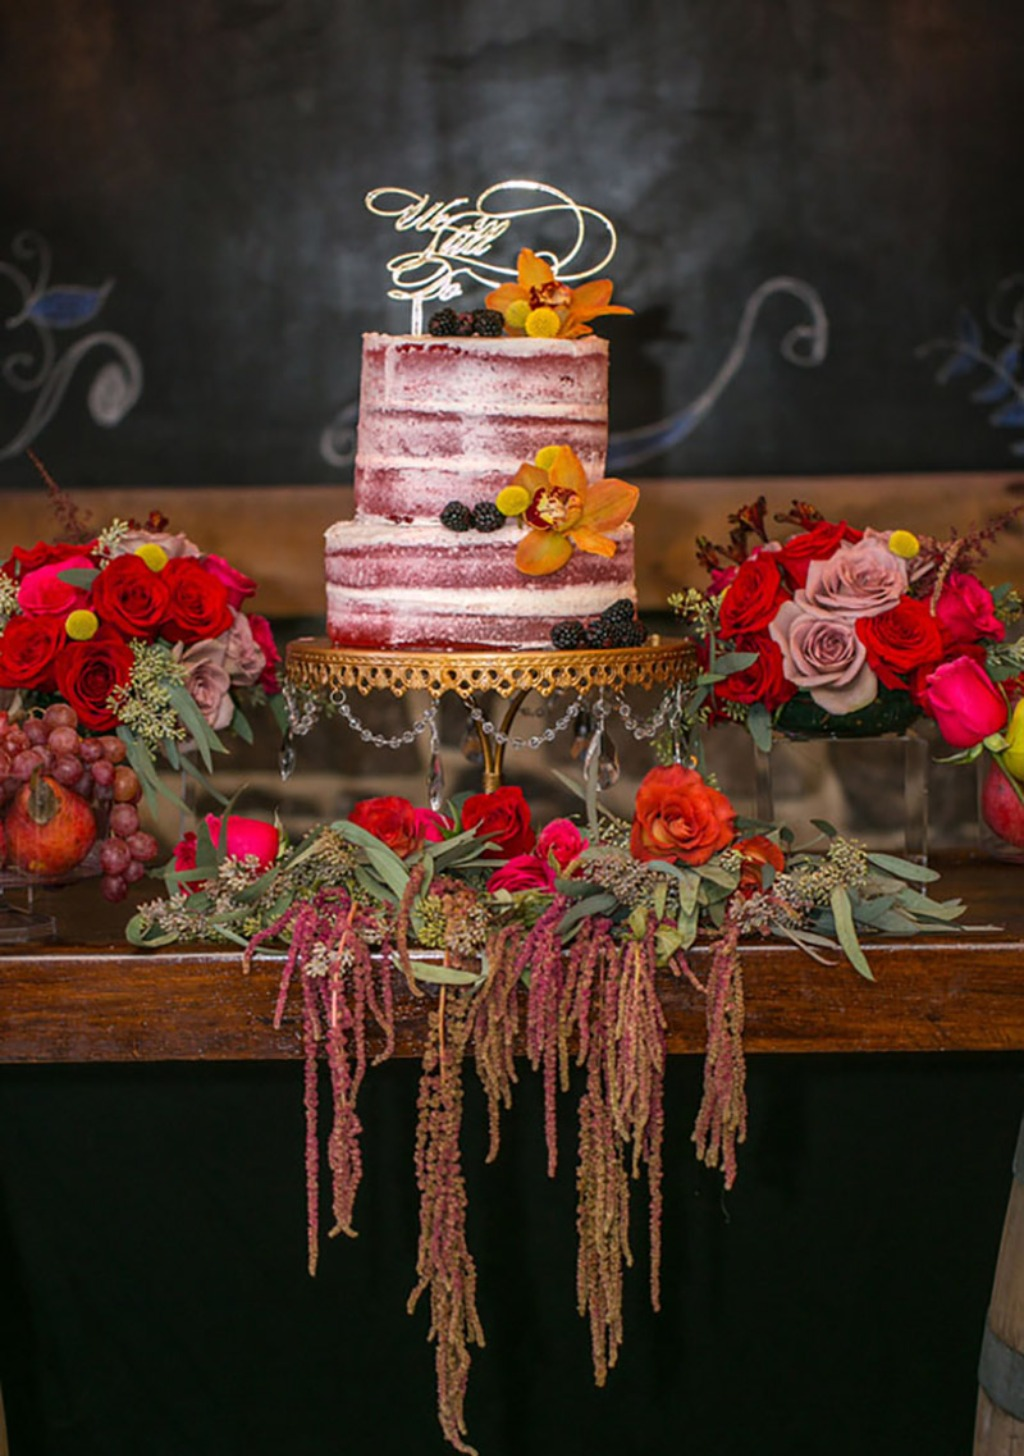 Rustic & Glamorous Wedding Cake Table ...Photographer: Aida Malik Photography //Floral Designer, Event Designer, and Event Planner